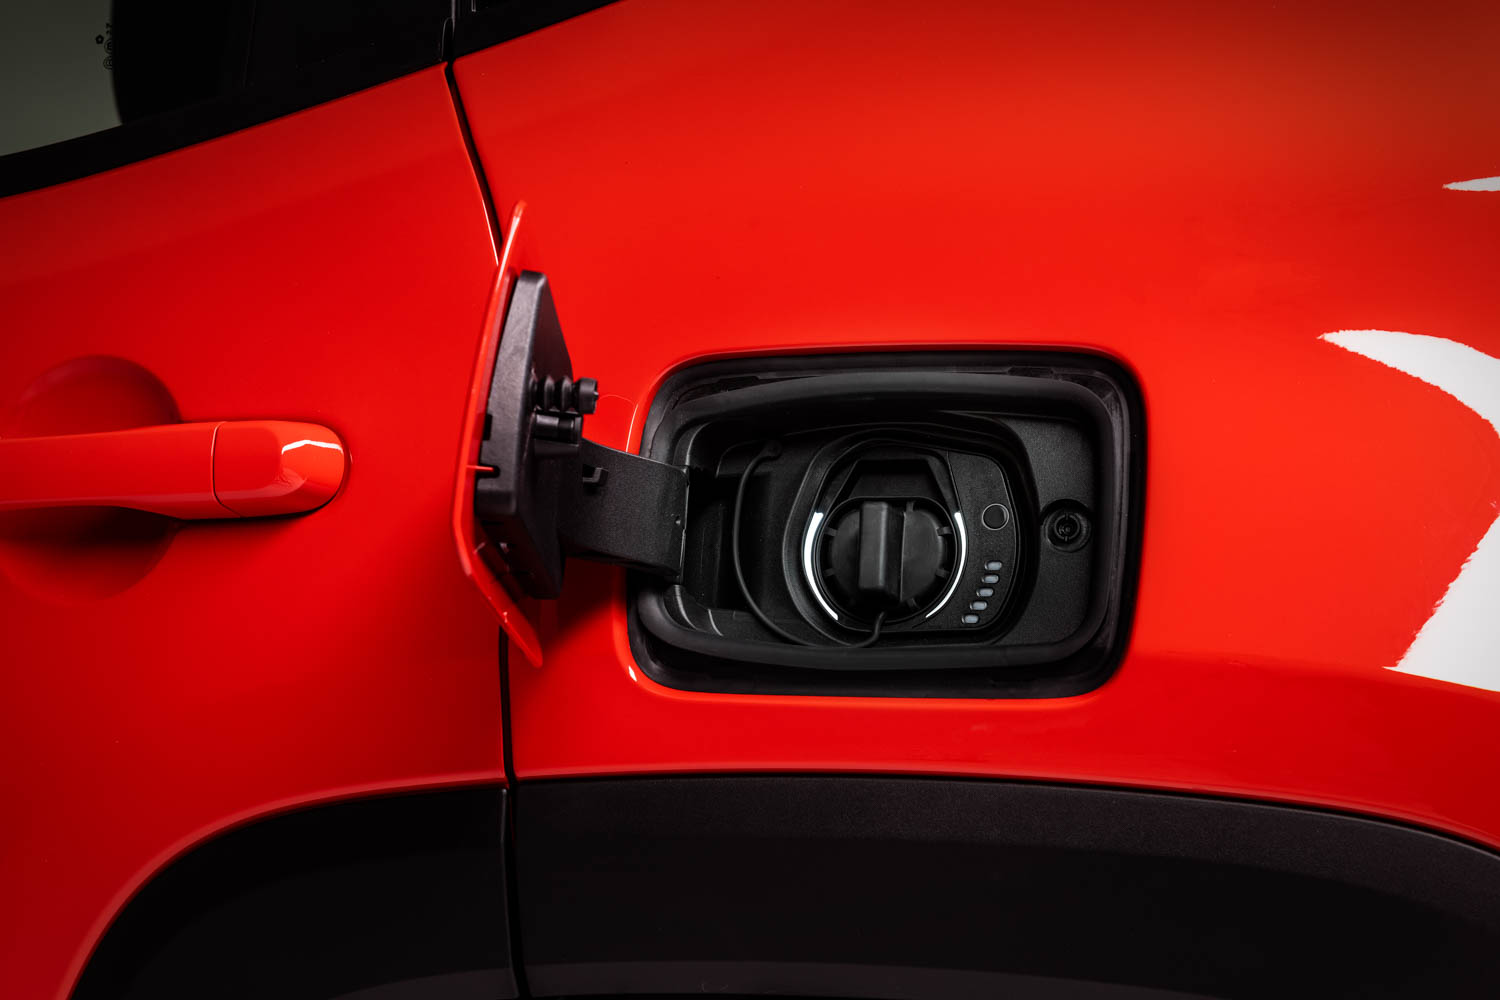 Jeep Renegade Plug-in Hybrid plug